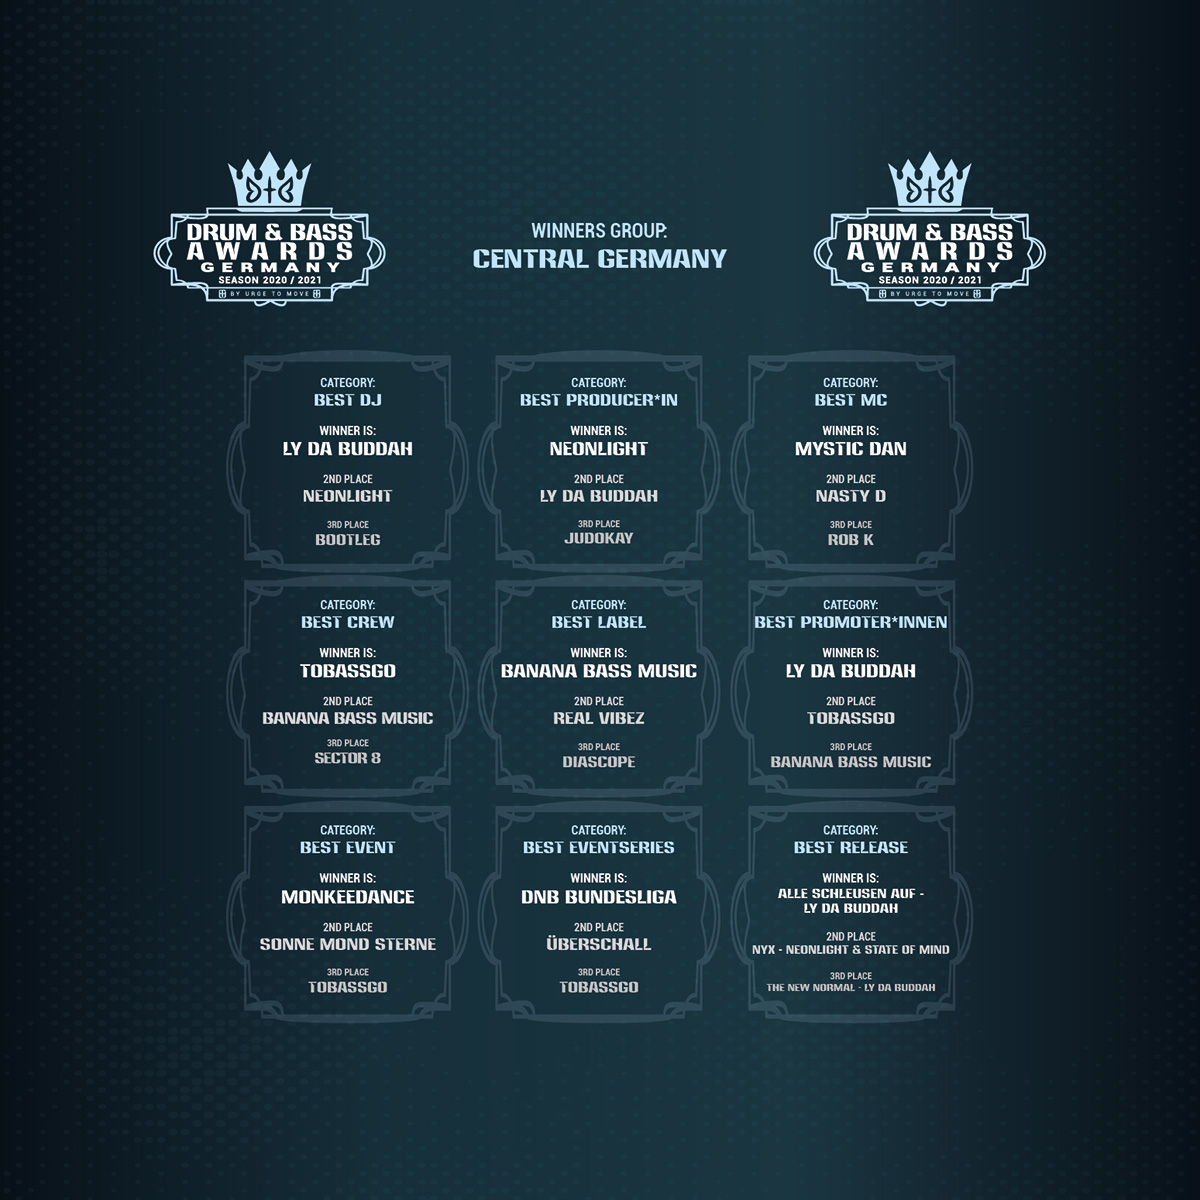 Drum and Bass Awards Germany - CENTRAL